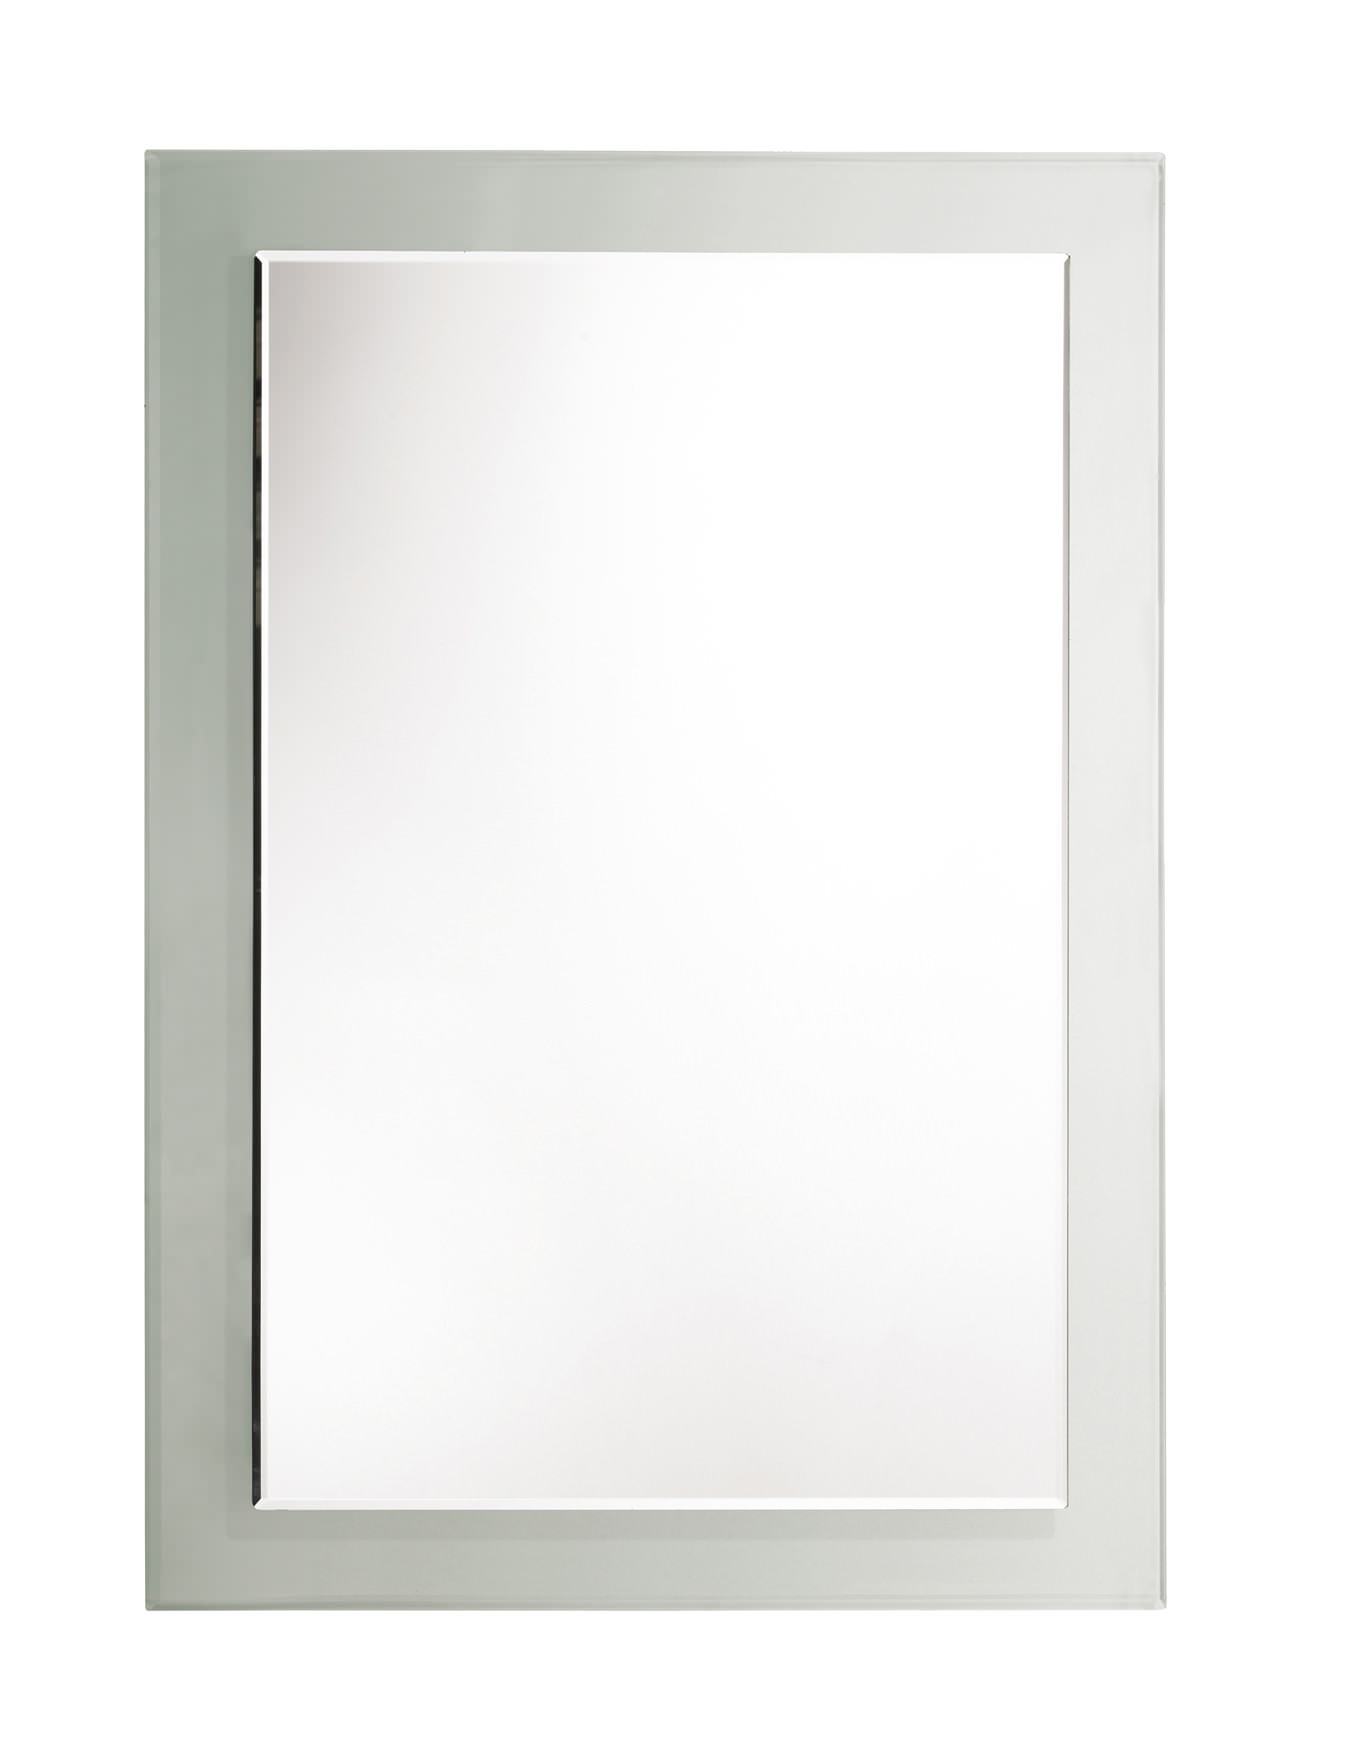 Large rectangular wall mirrors for bathroom - Roper Rhodes Bevelled Level Glass Mirror With Clear Frame